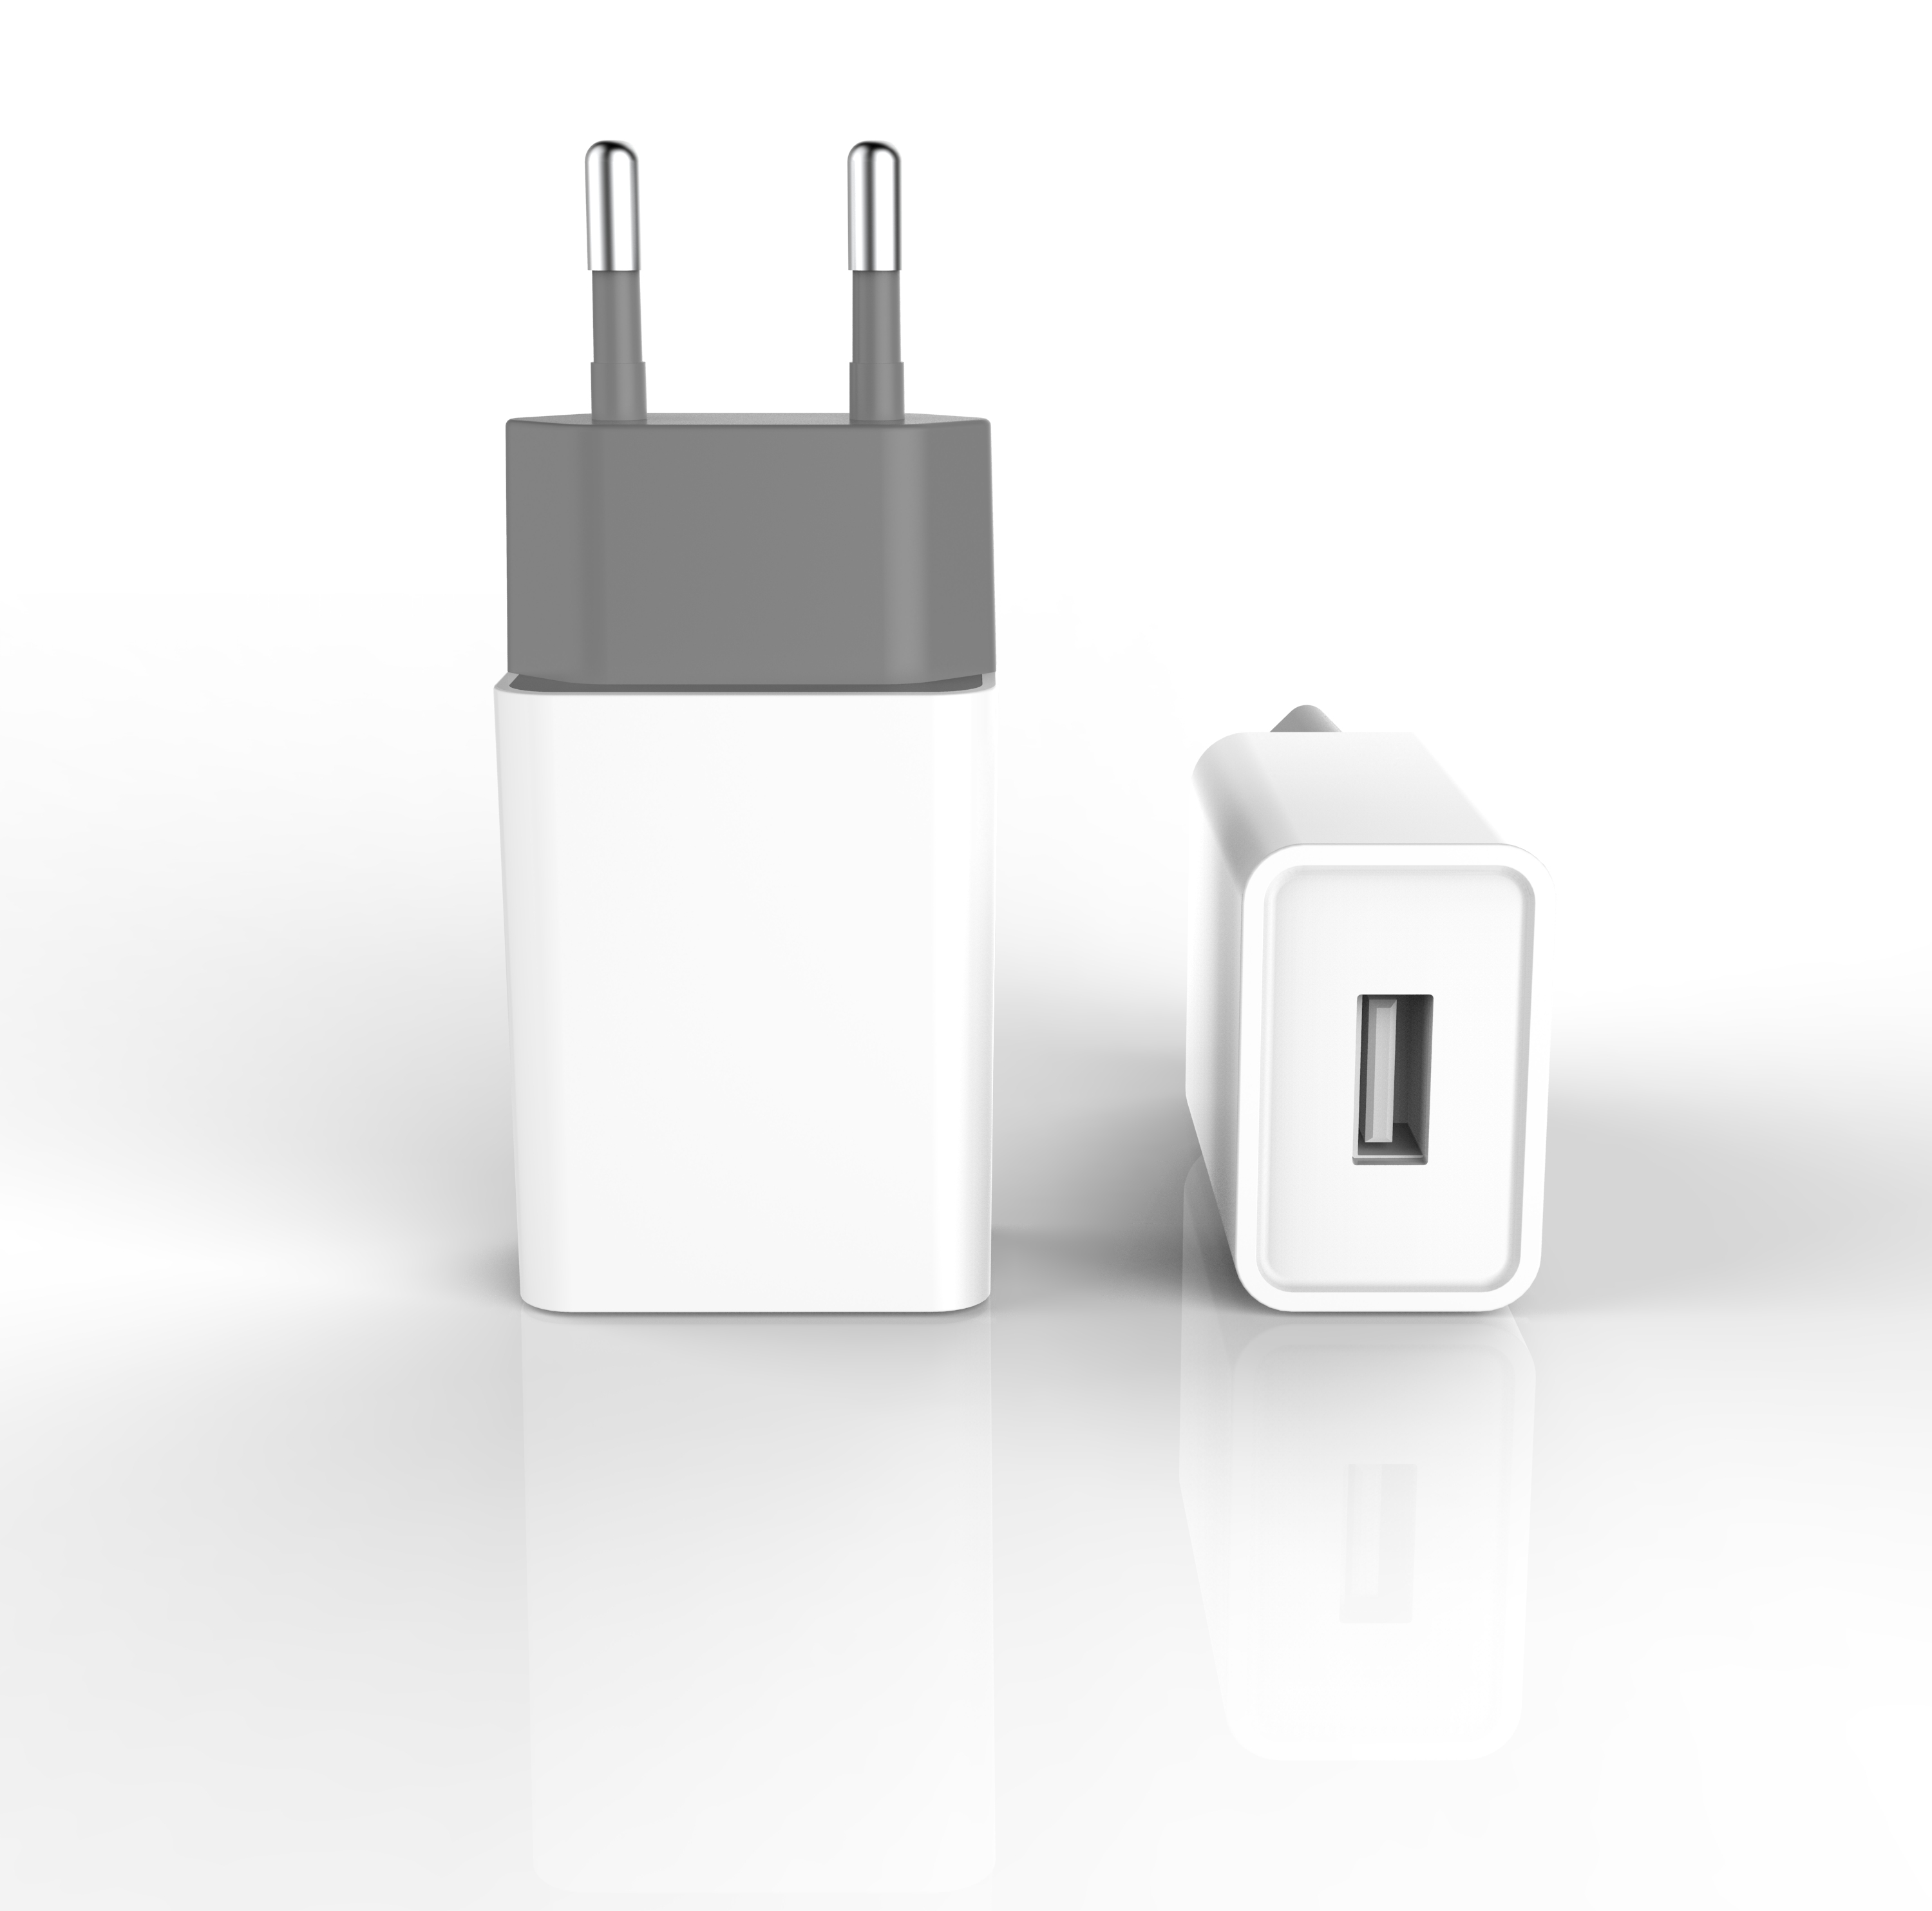 5V1.5A 5V2A USB CHARGER for Europe